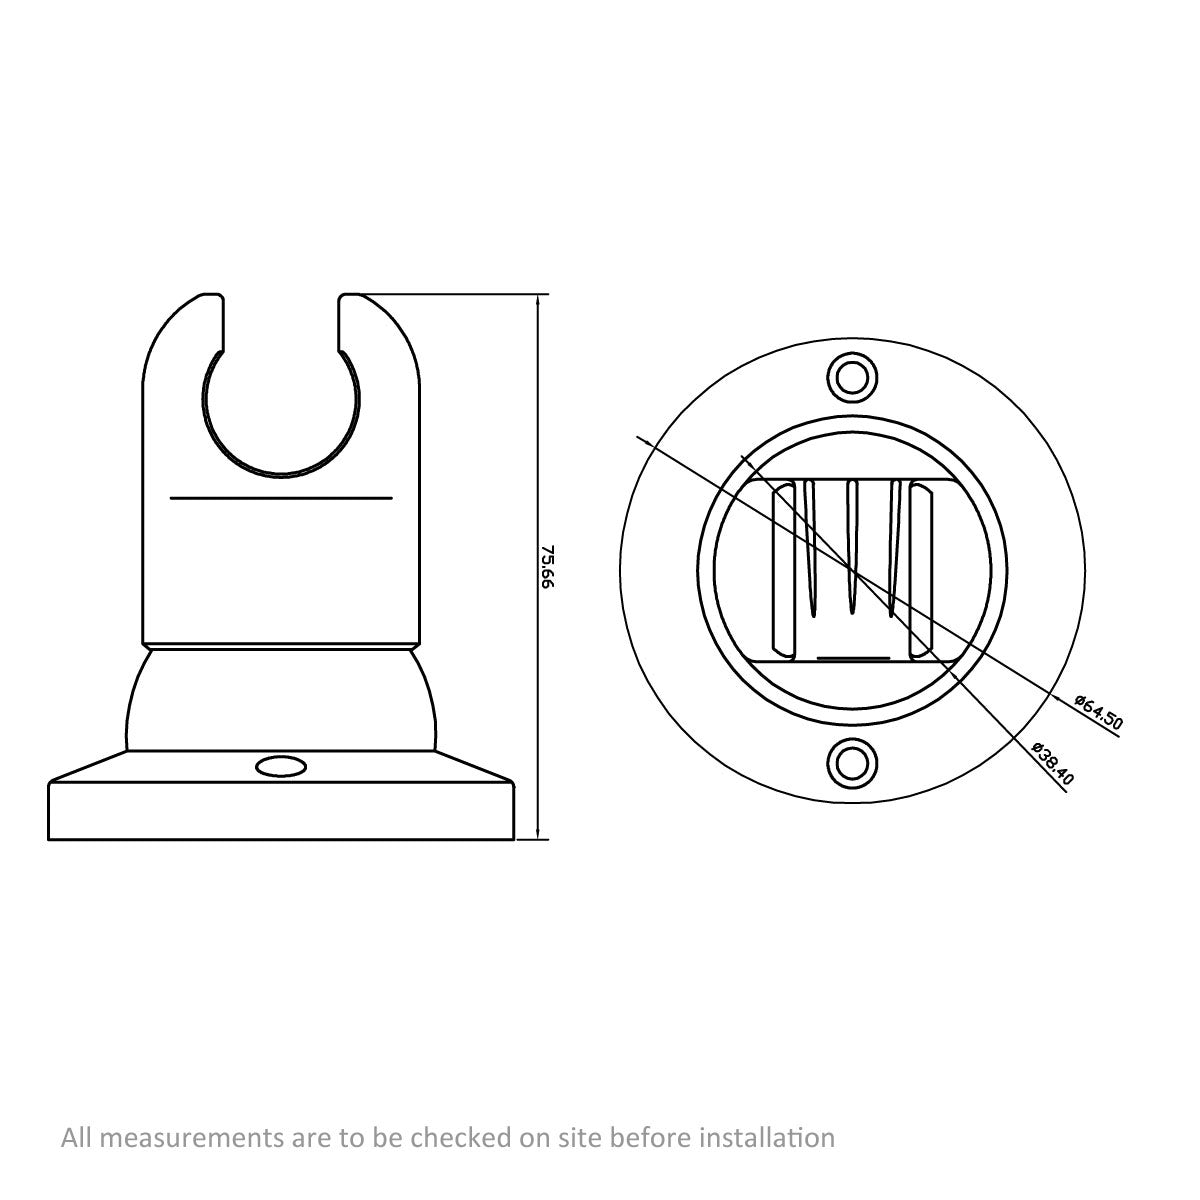 Dimensions for Orchard Round wall hand shower holder